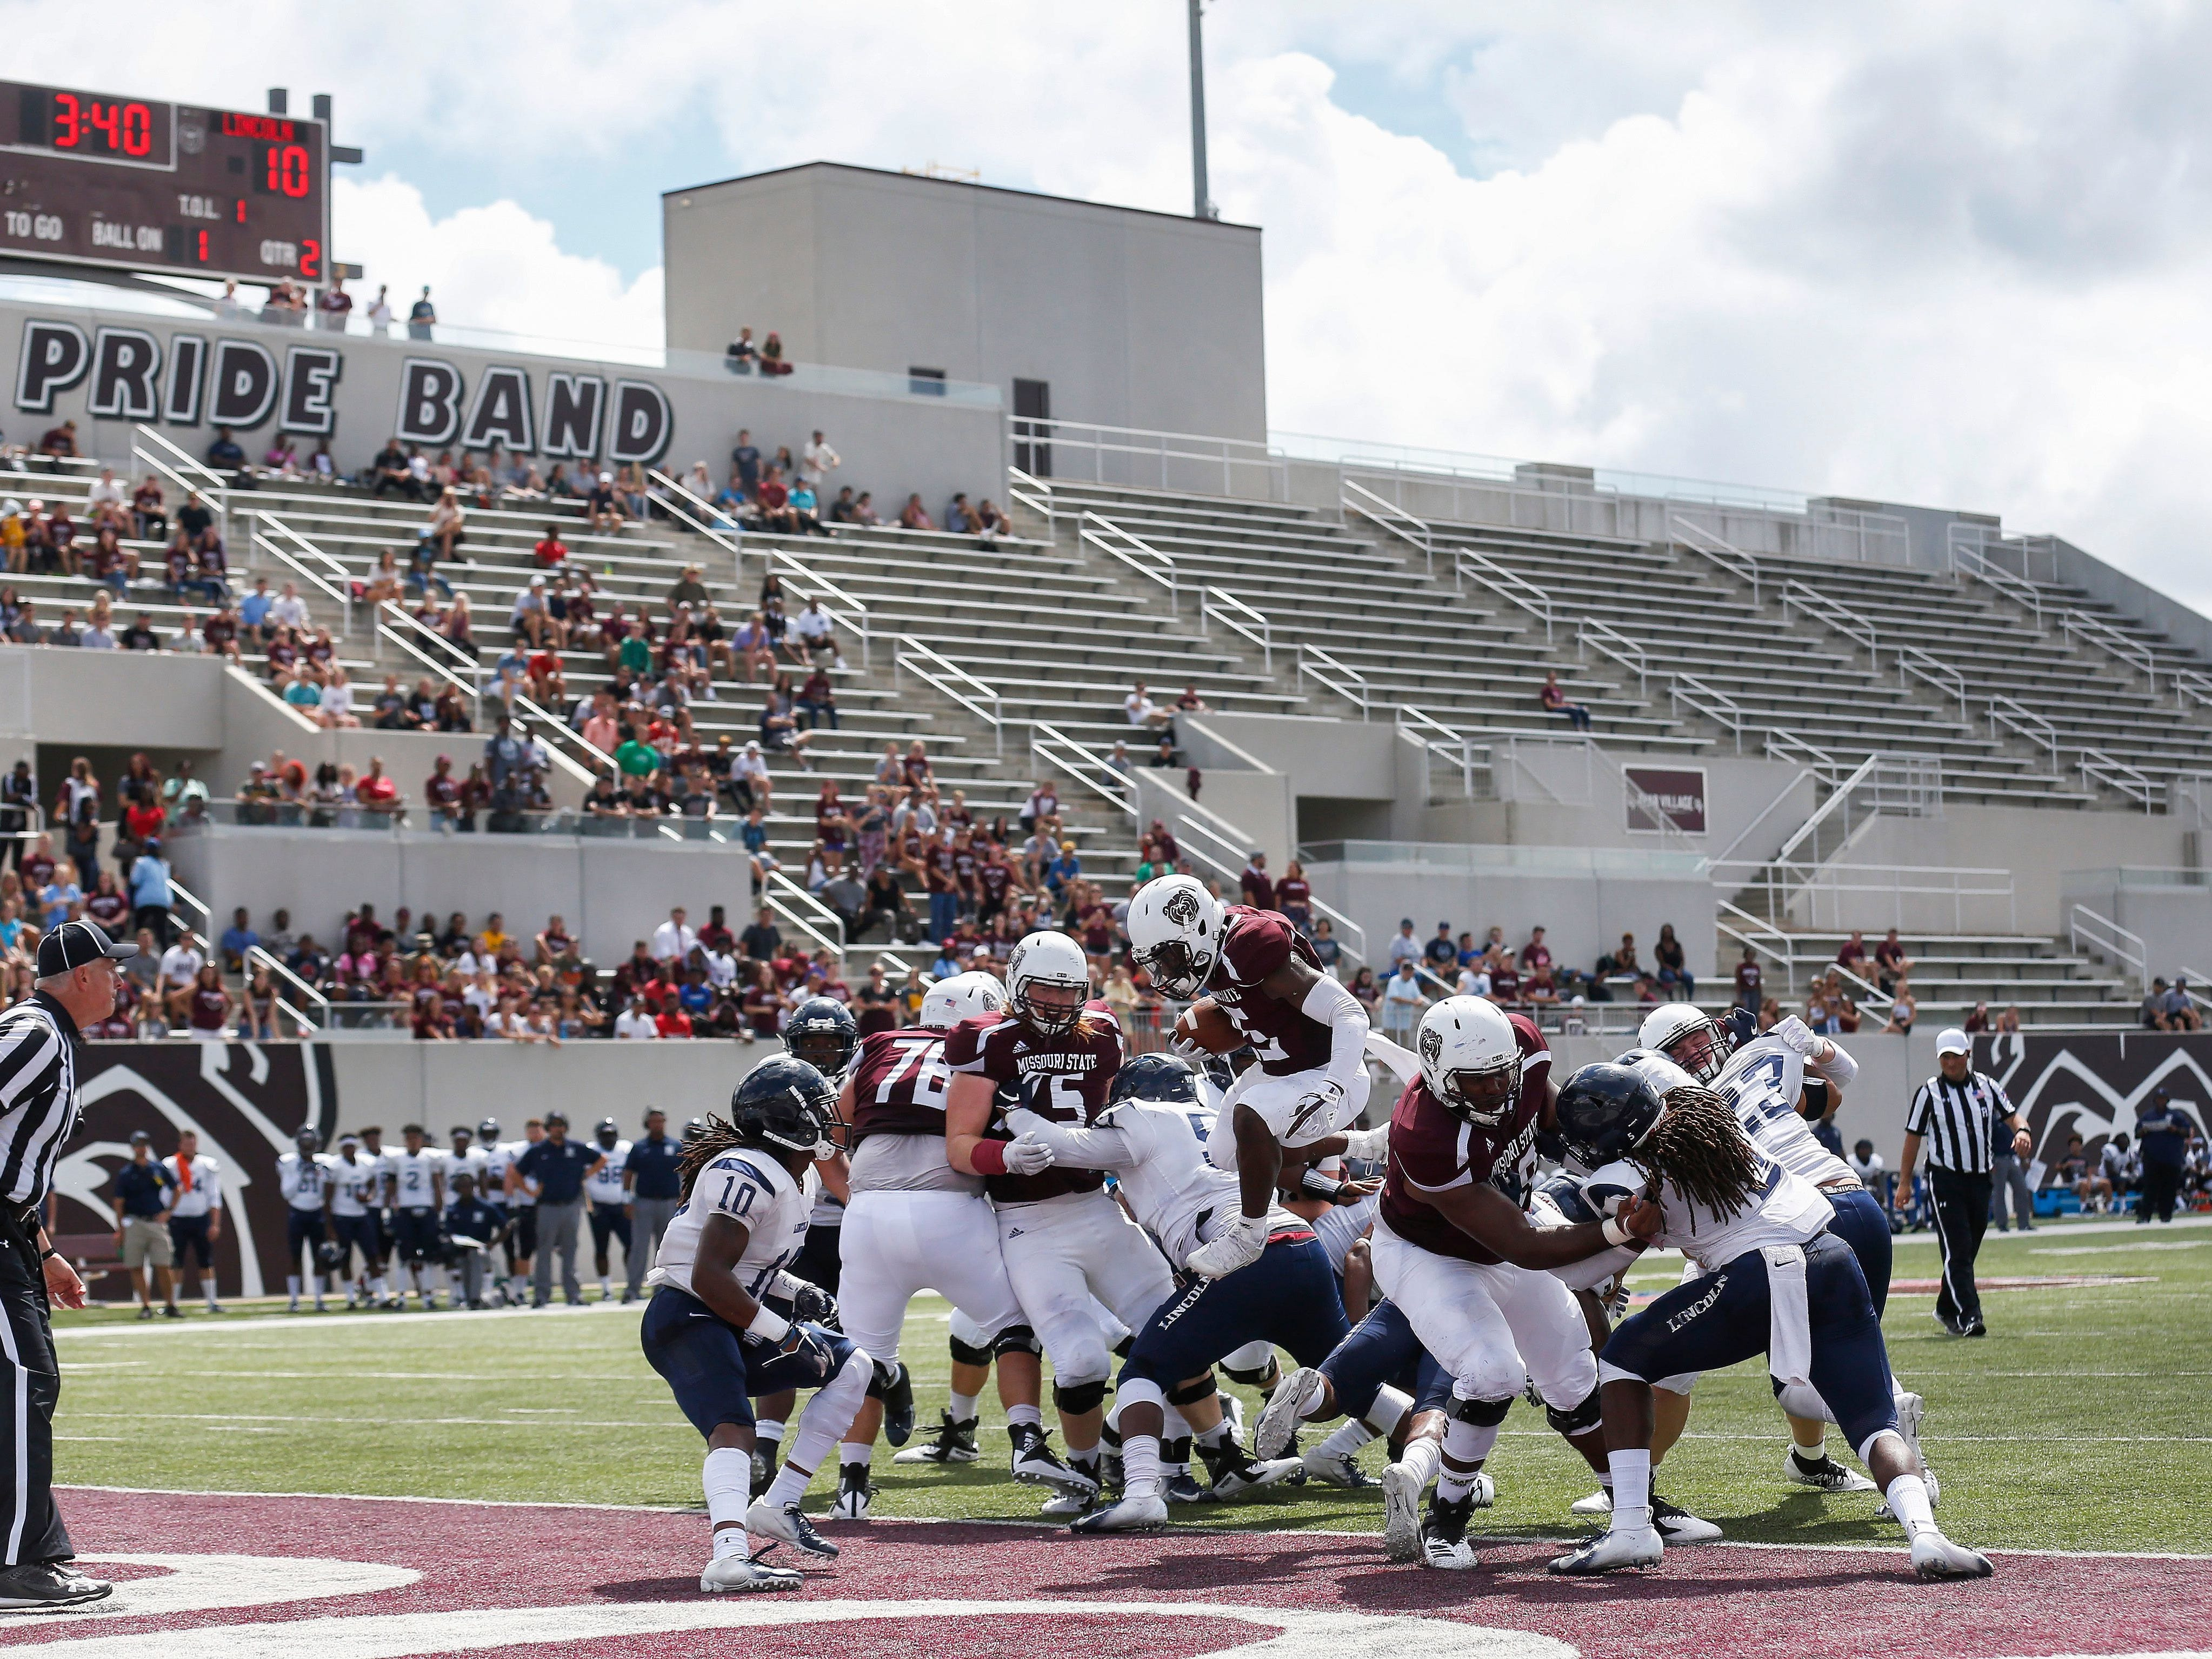 Sept. 6: MSU football plays Thursday morning game in front of 1,284 people.